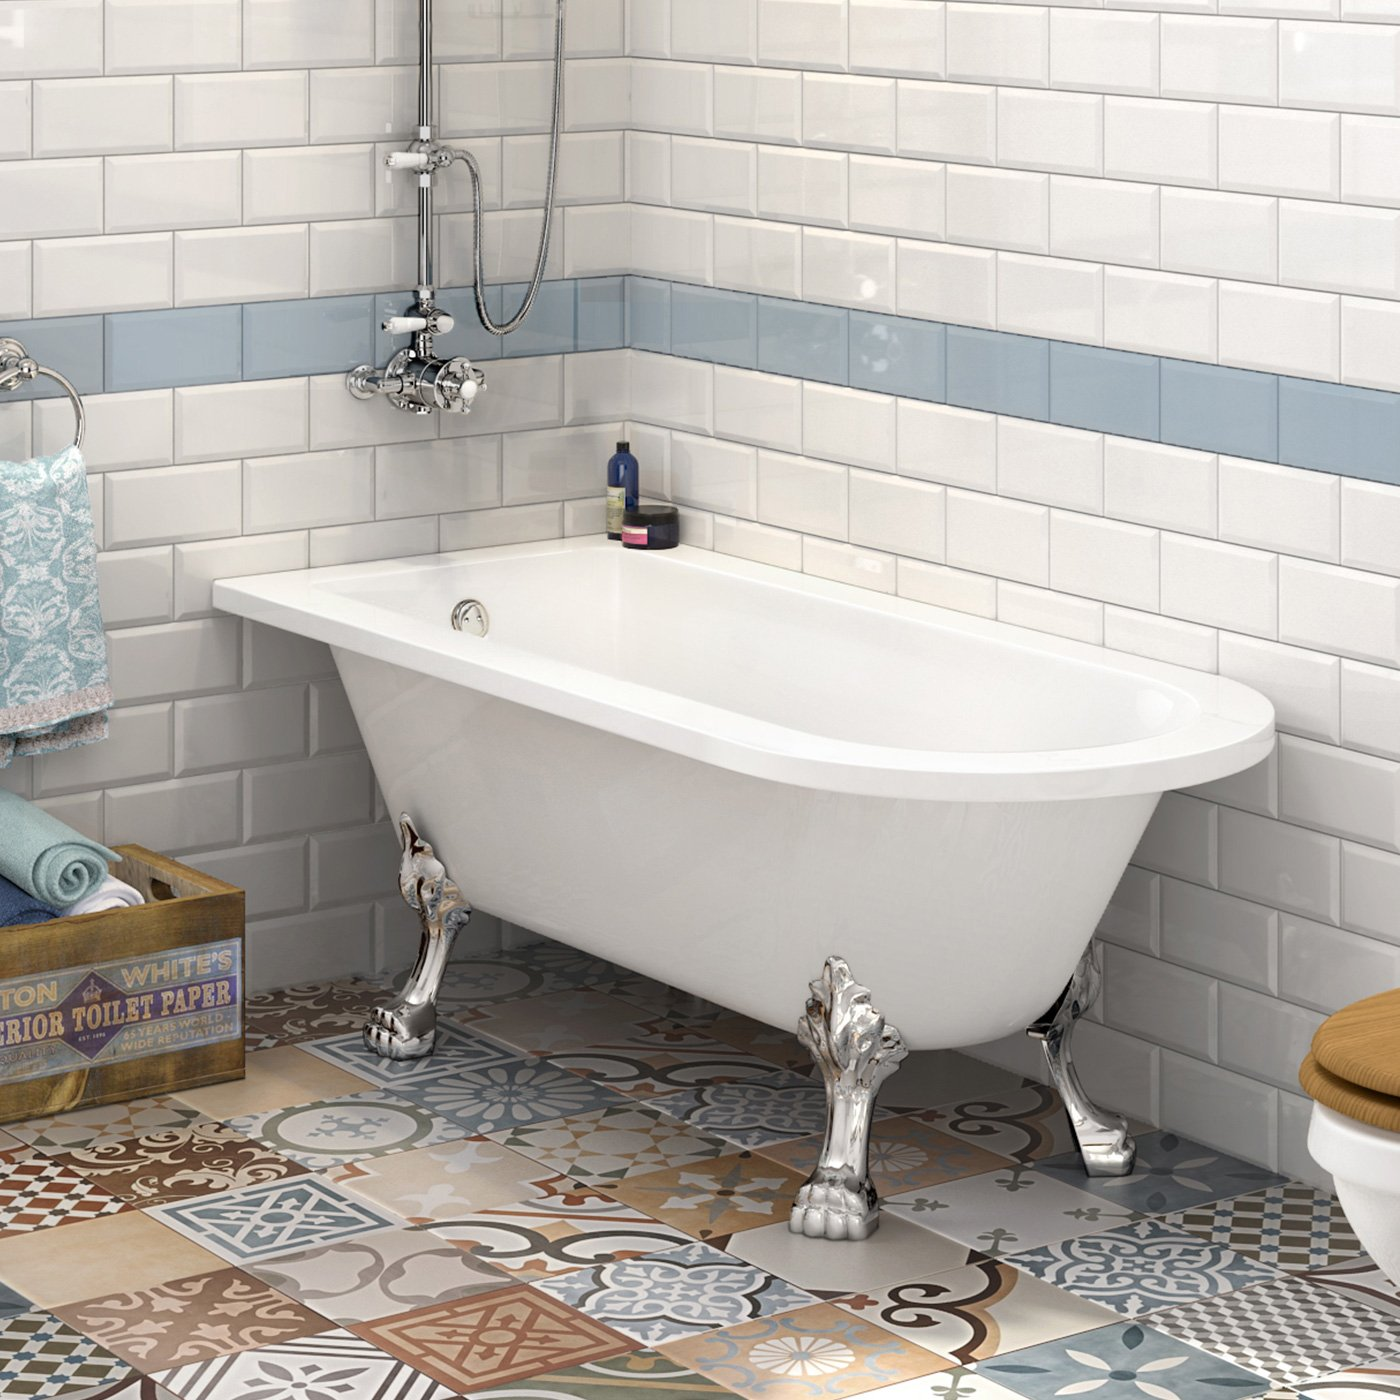 Single Ended Roll Top Bath With Shower Screen Introducing the new ...